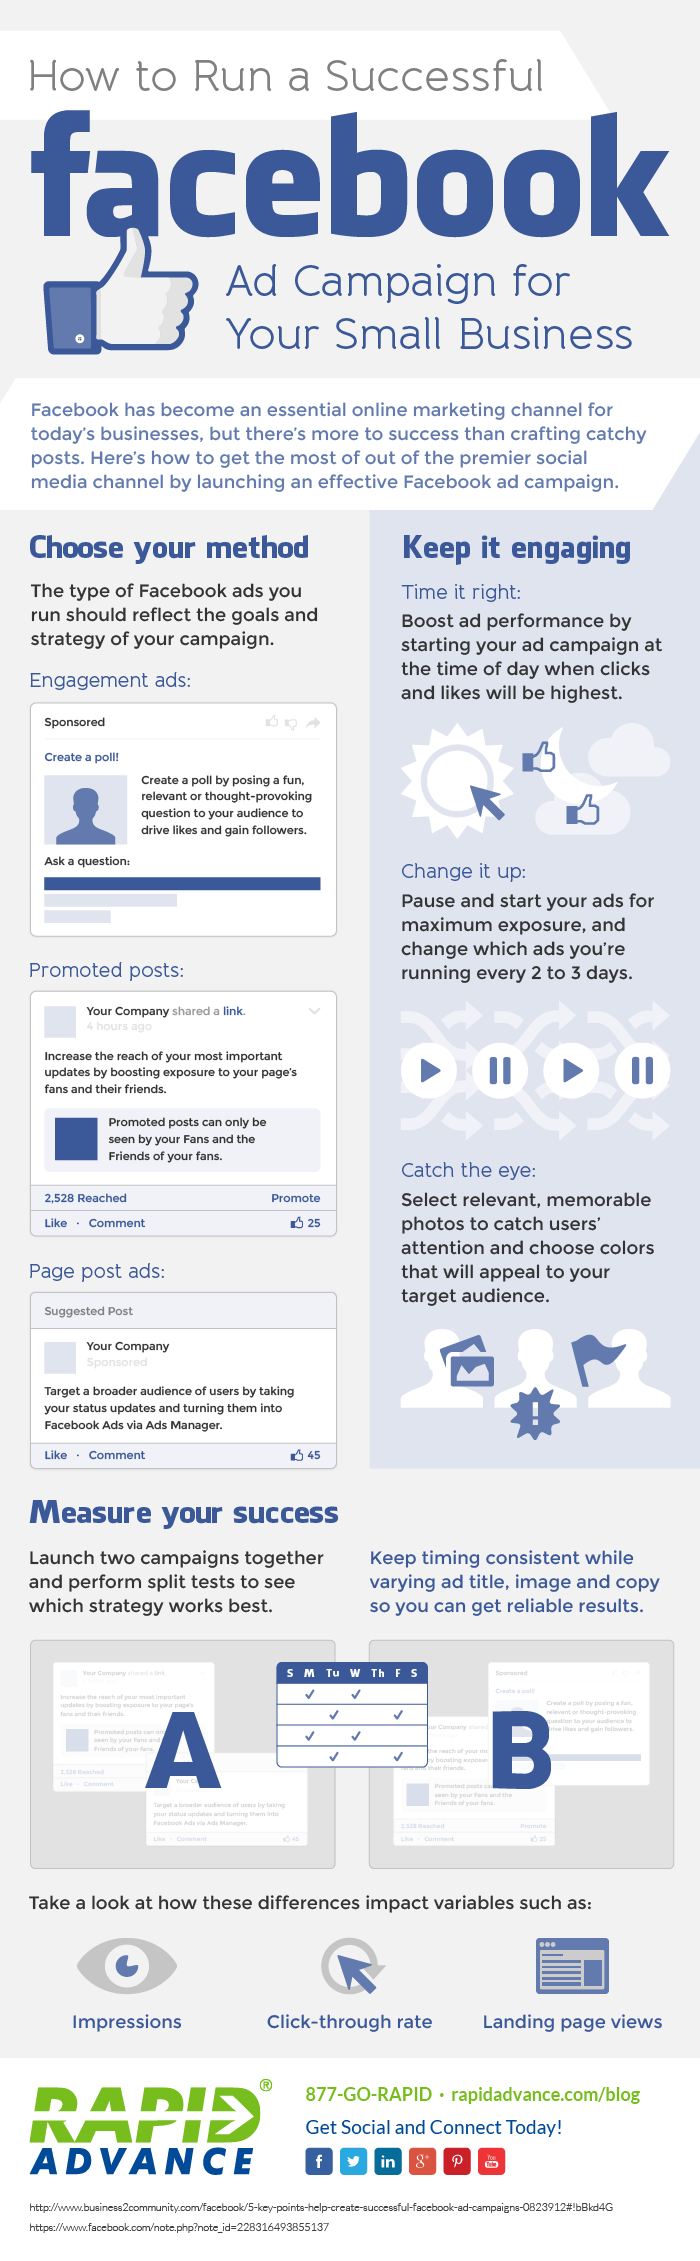 #Infographic: How to Run a Successful #Facebook Ad Campaign for Your Small Business - #socialmedia